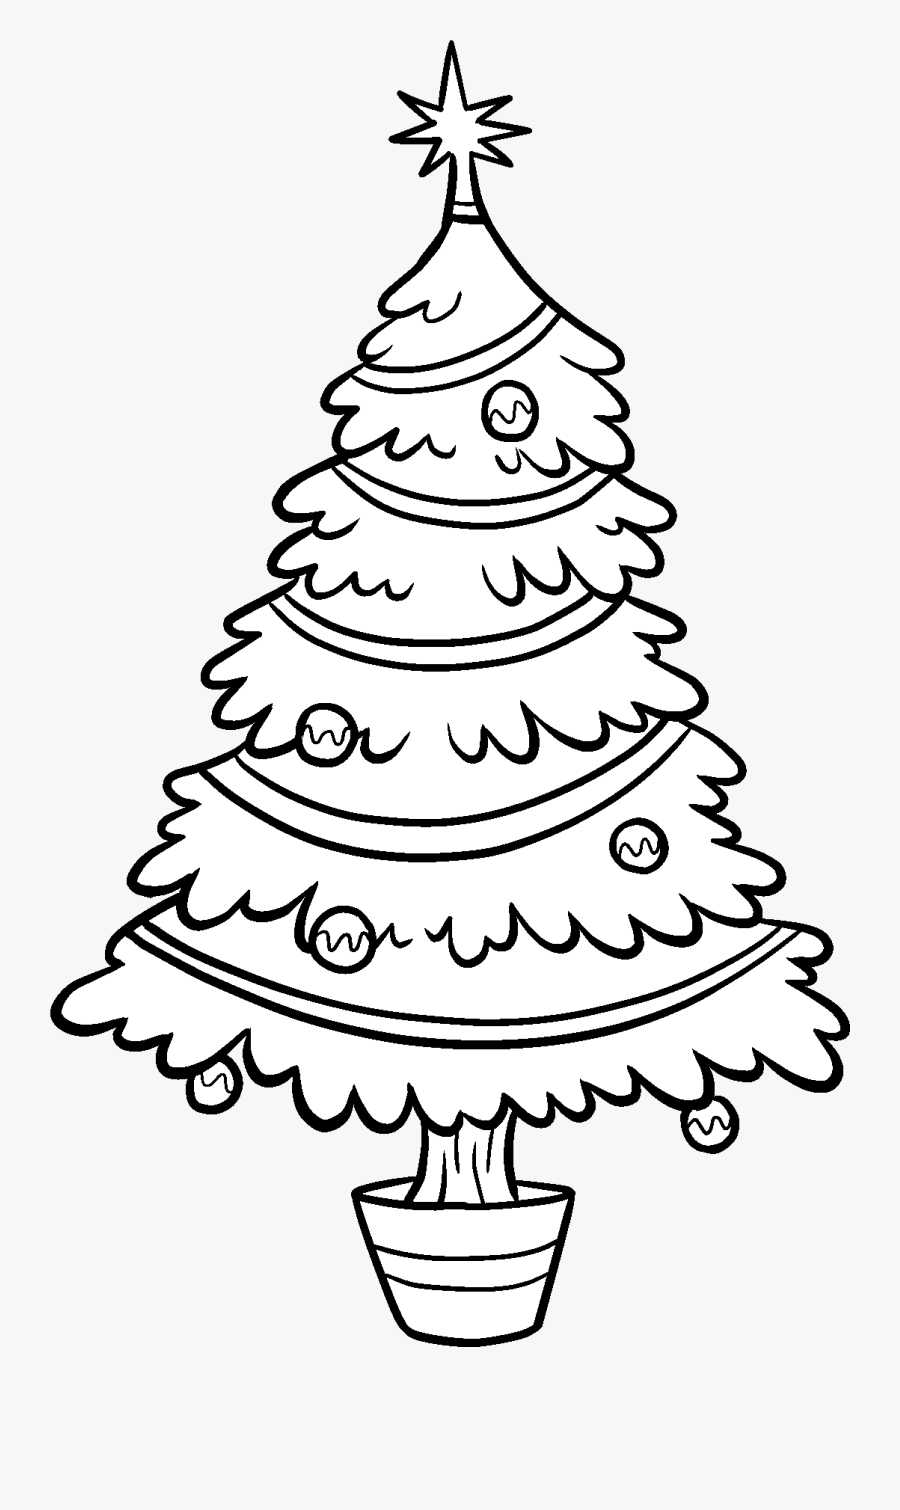 Christmas Tree Clipart Outline - Transparent Christmas Tree Black And White Clipart, Transparent Clipart